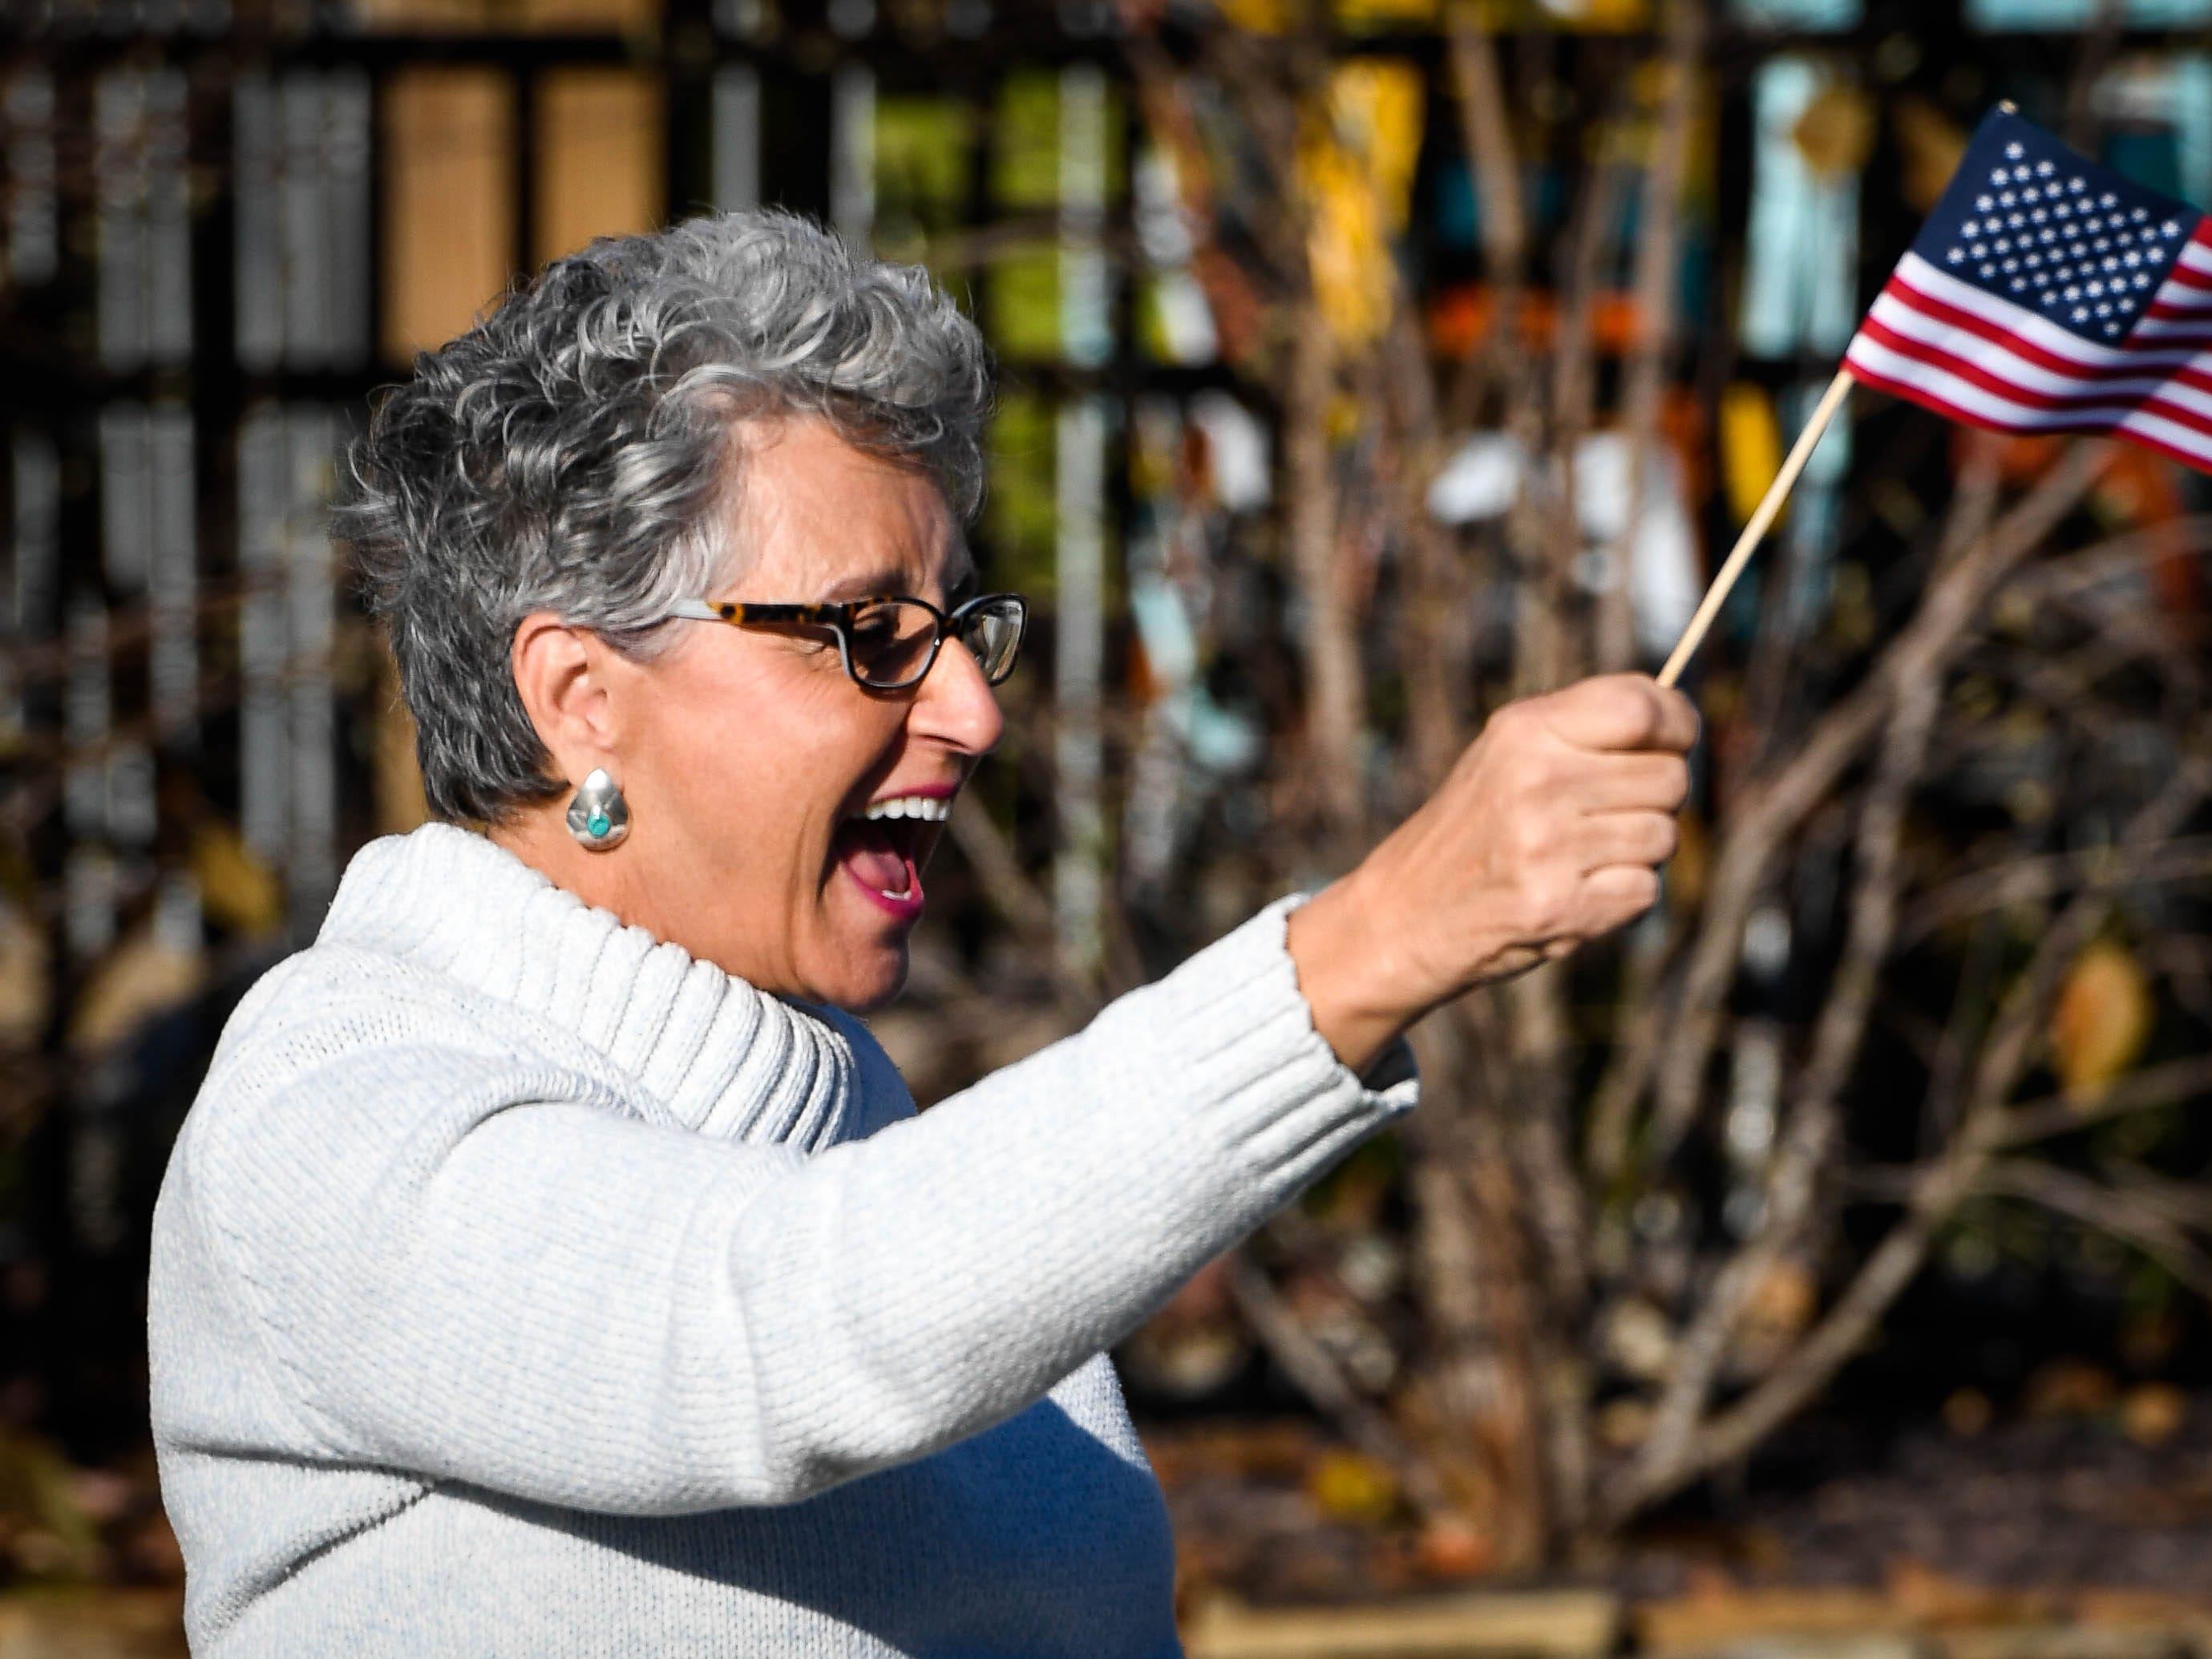 Linda Dyer waves her flag at passing parade floats during the annual Four Freedoms Veterans Parade on Evansville's West Franklin Street Saturday, November 10, 2018.